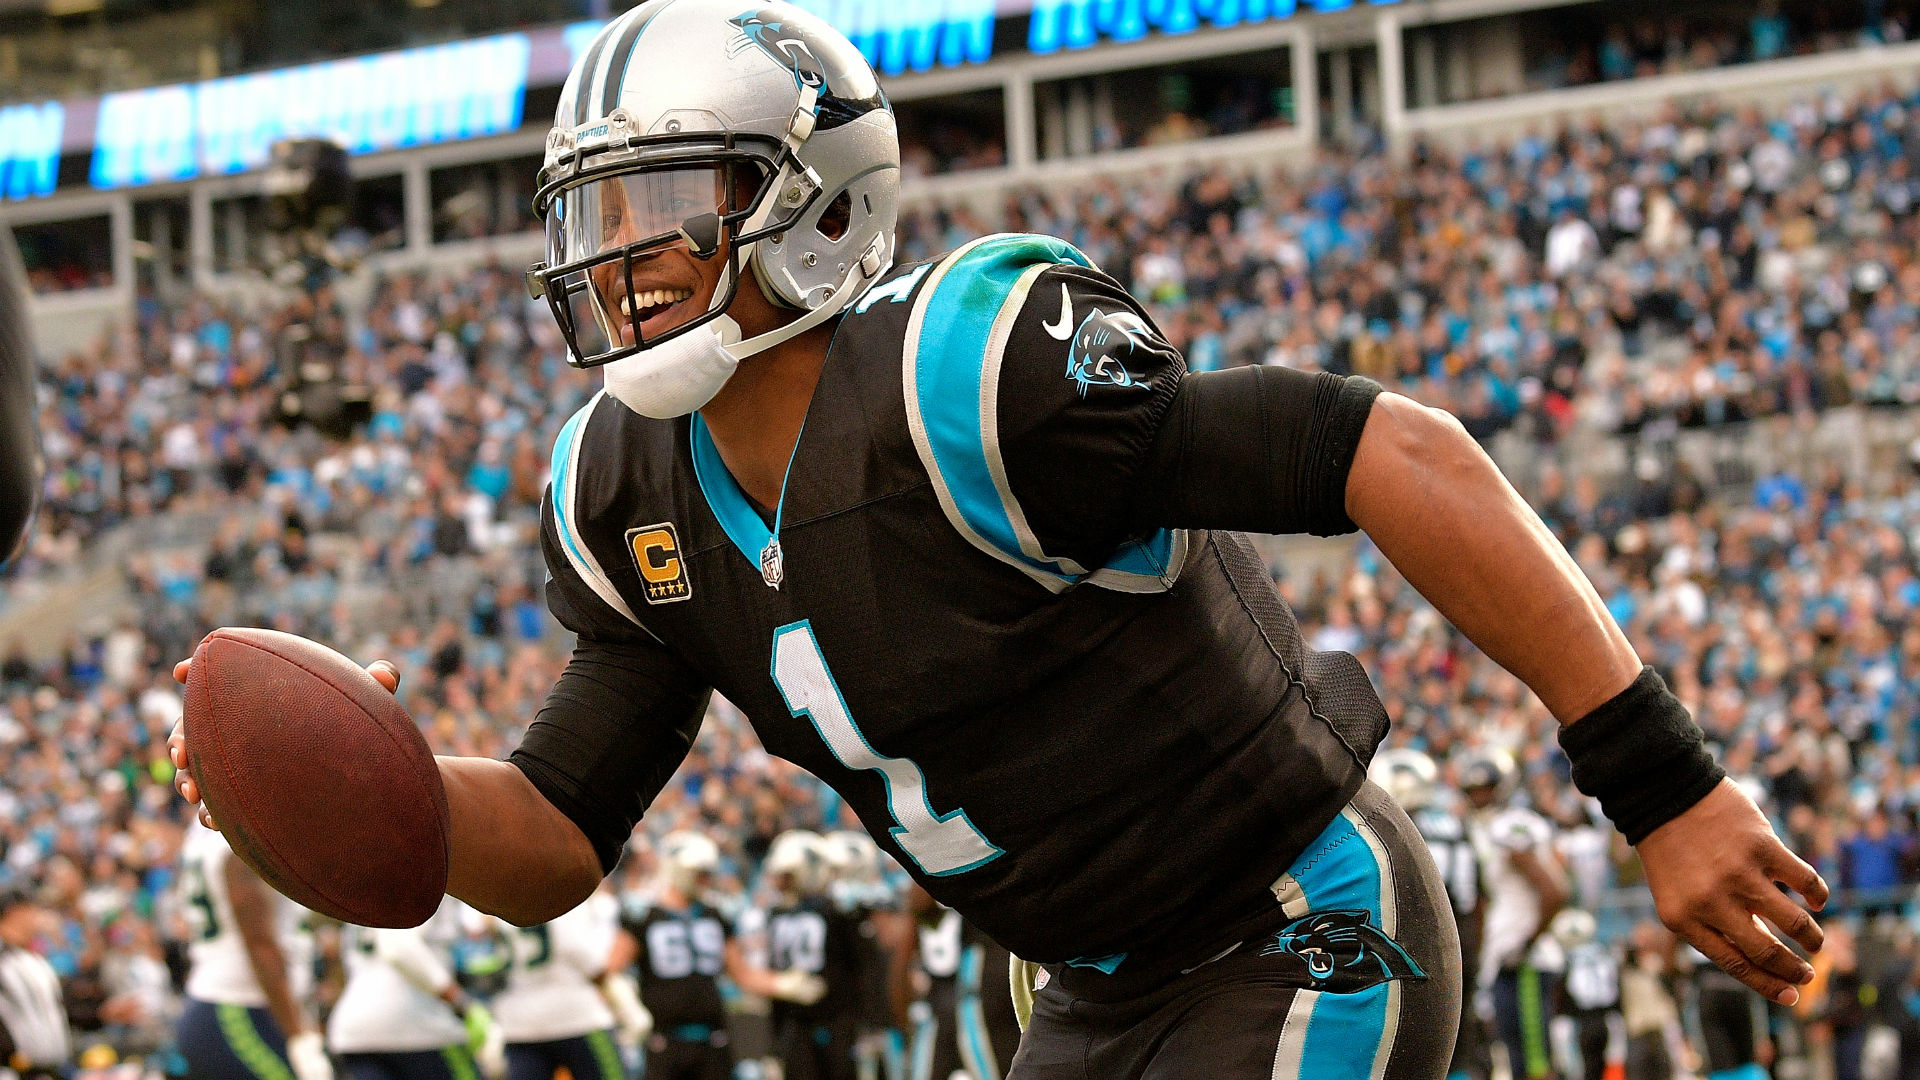 Cam Newton swears off sex for a month to become 'mentally stronger'